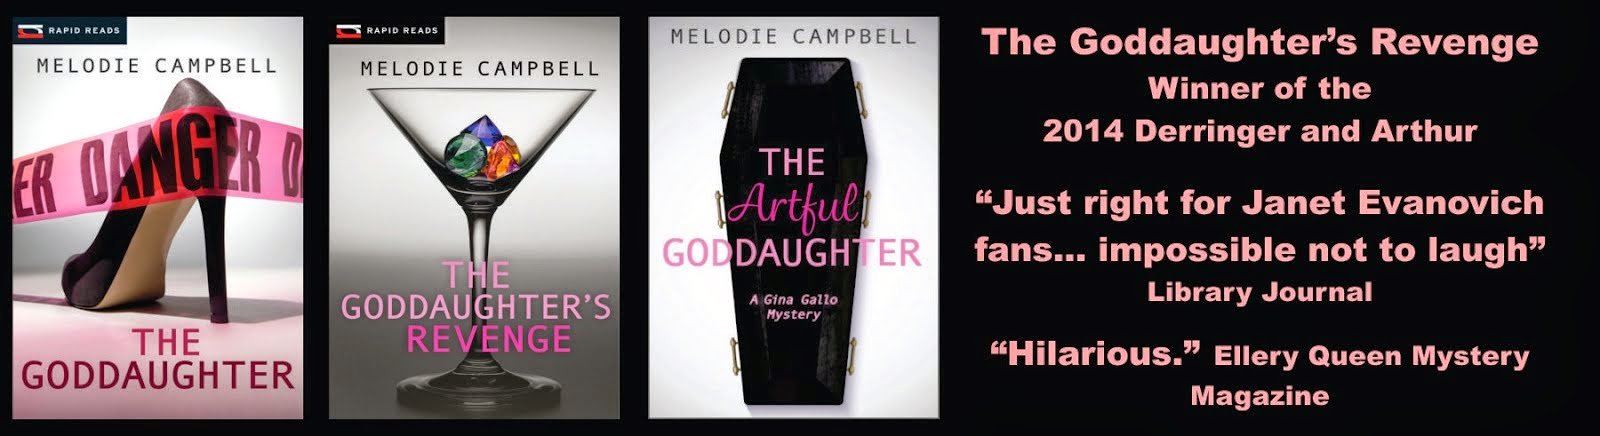 Melodie Campbell Author (the home of Bad Girl Comedy)